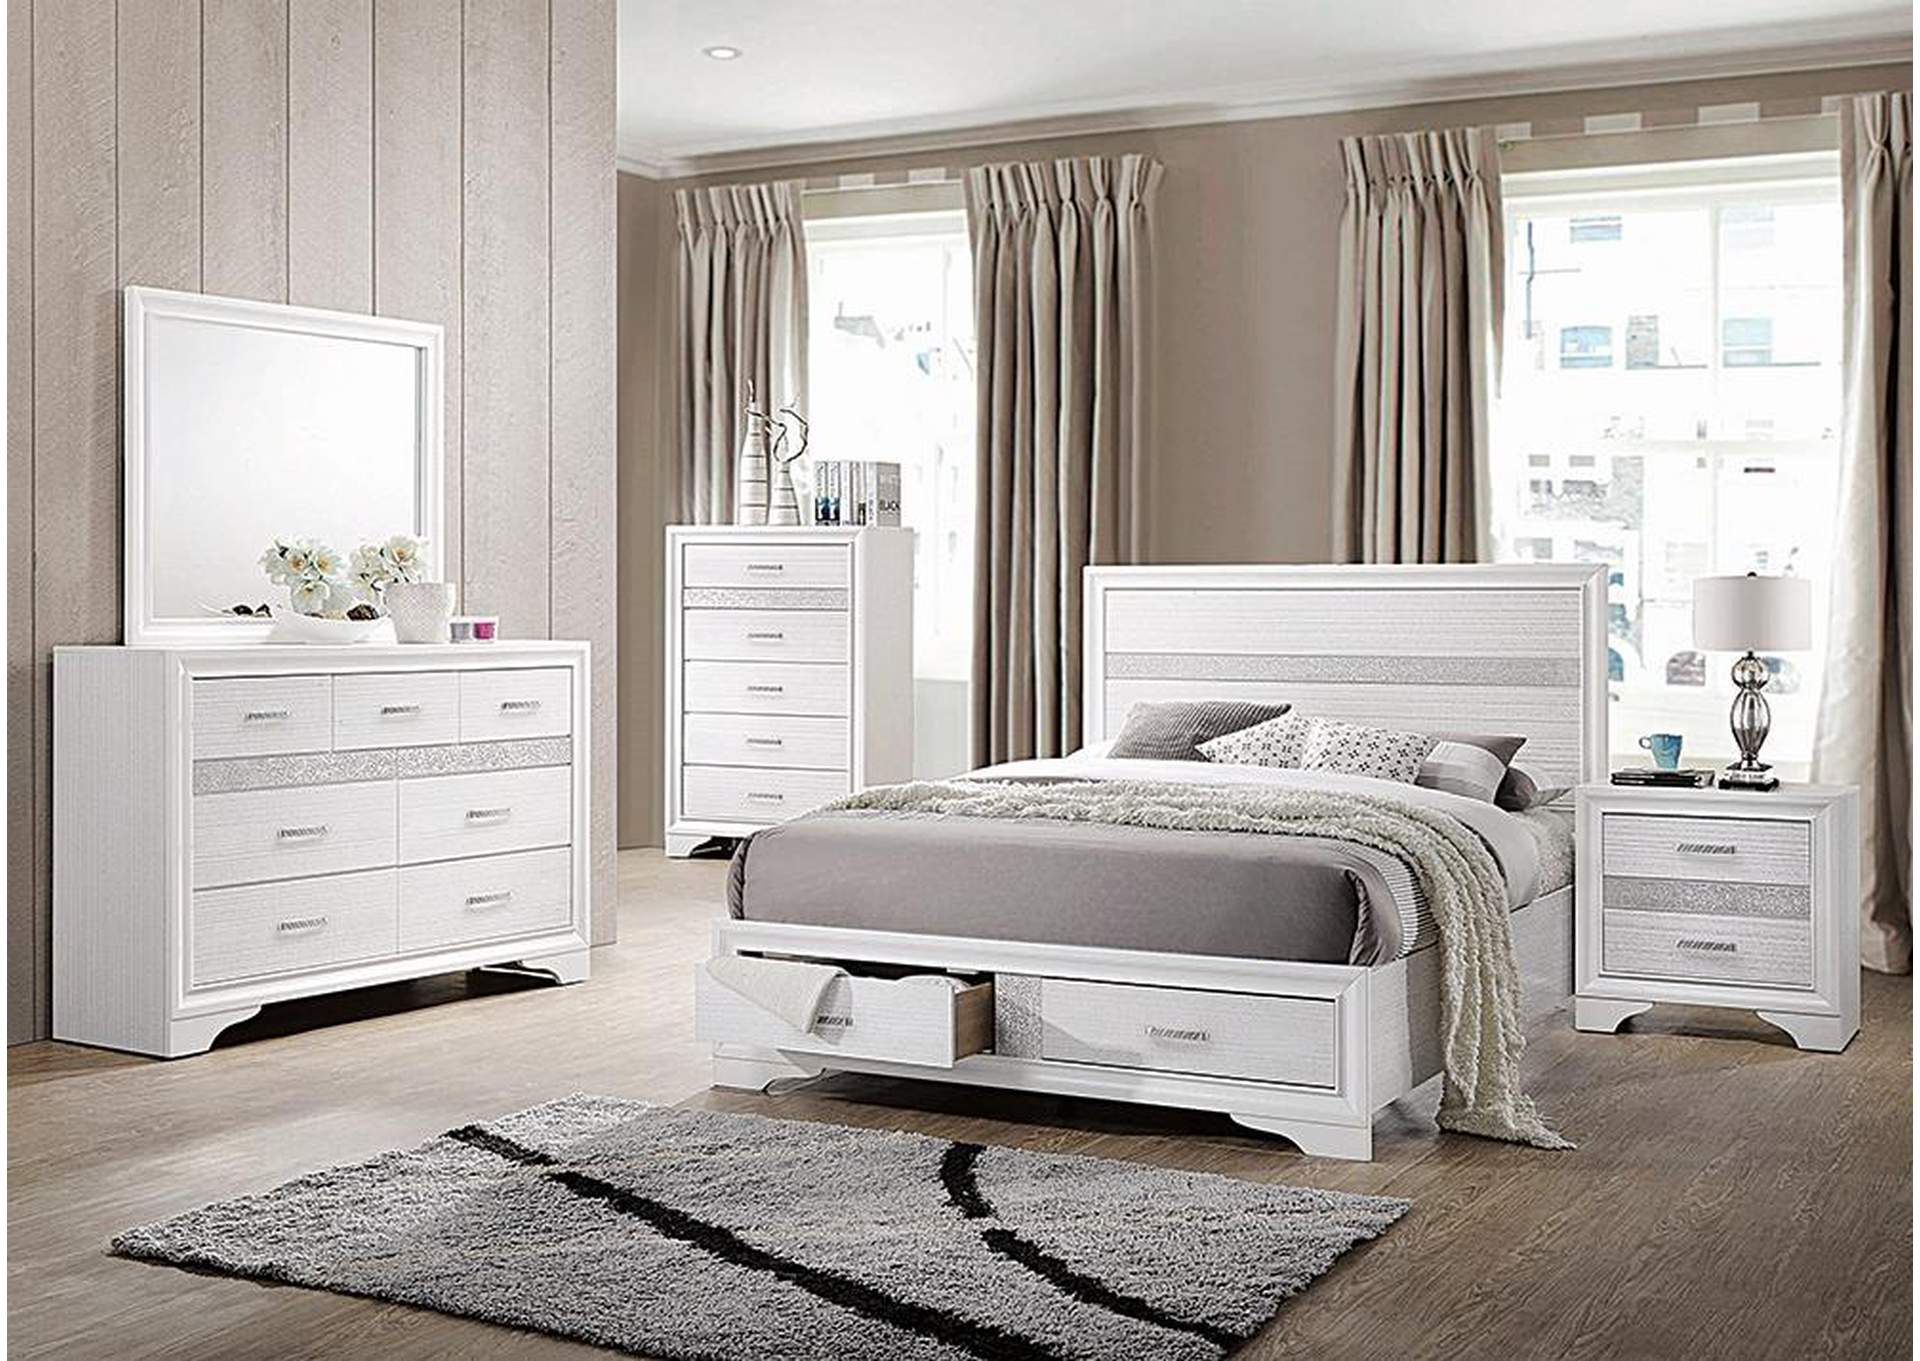 Miranda White Eastern King Storage Bed W/ Dresser & Mirror,Coaster Furniture